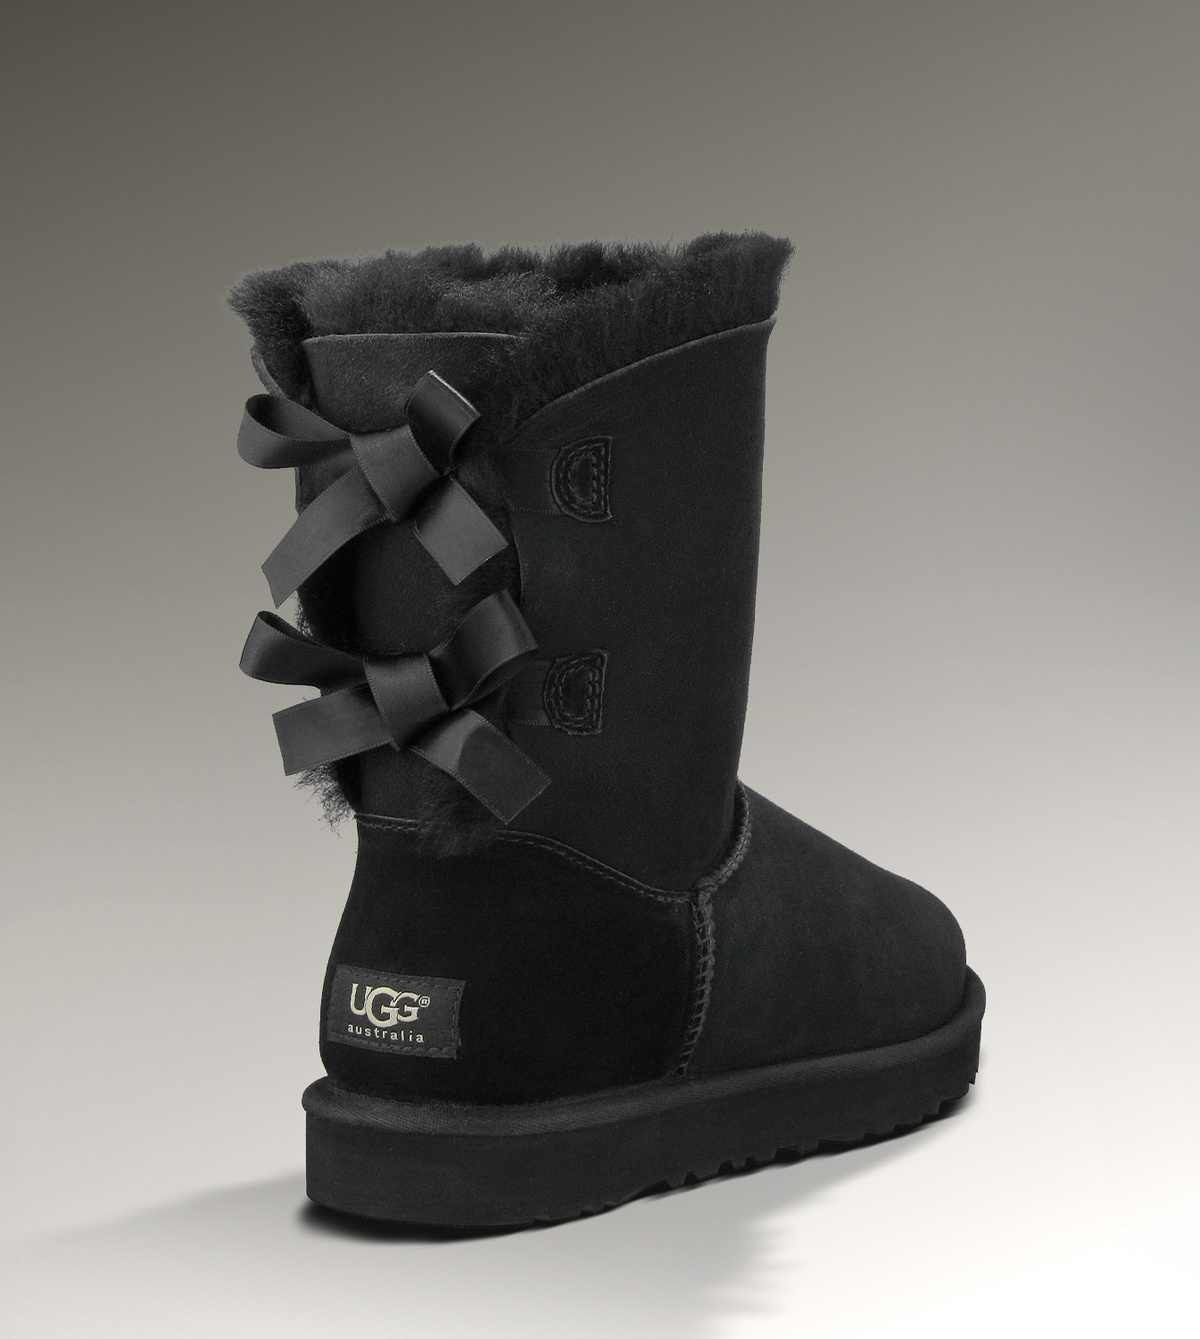 Uggs So Cute Bow Boots Bailey Bow Uggs Ugg Boots